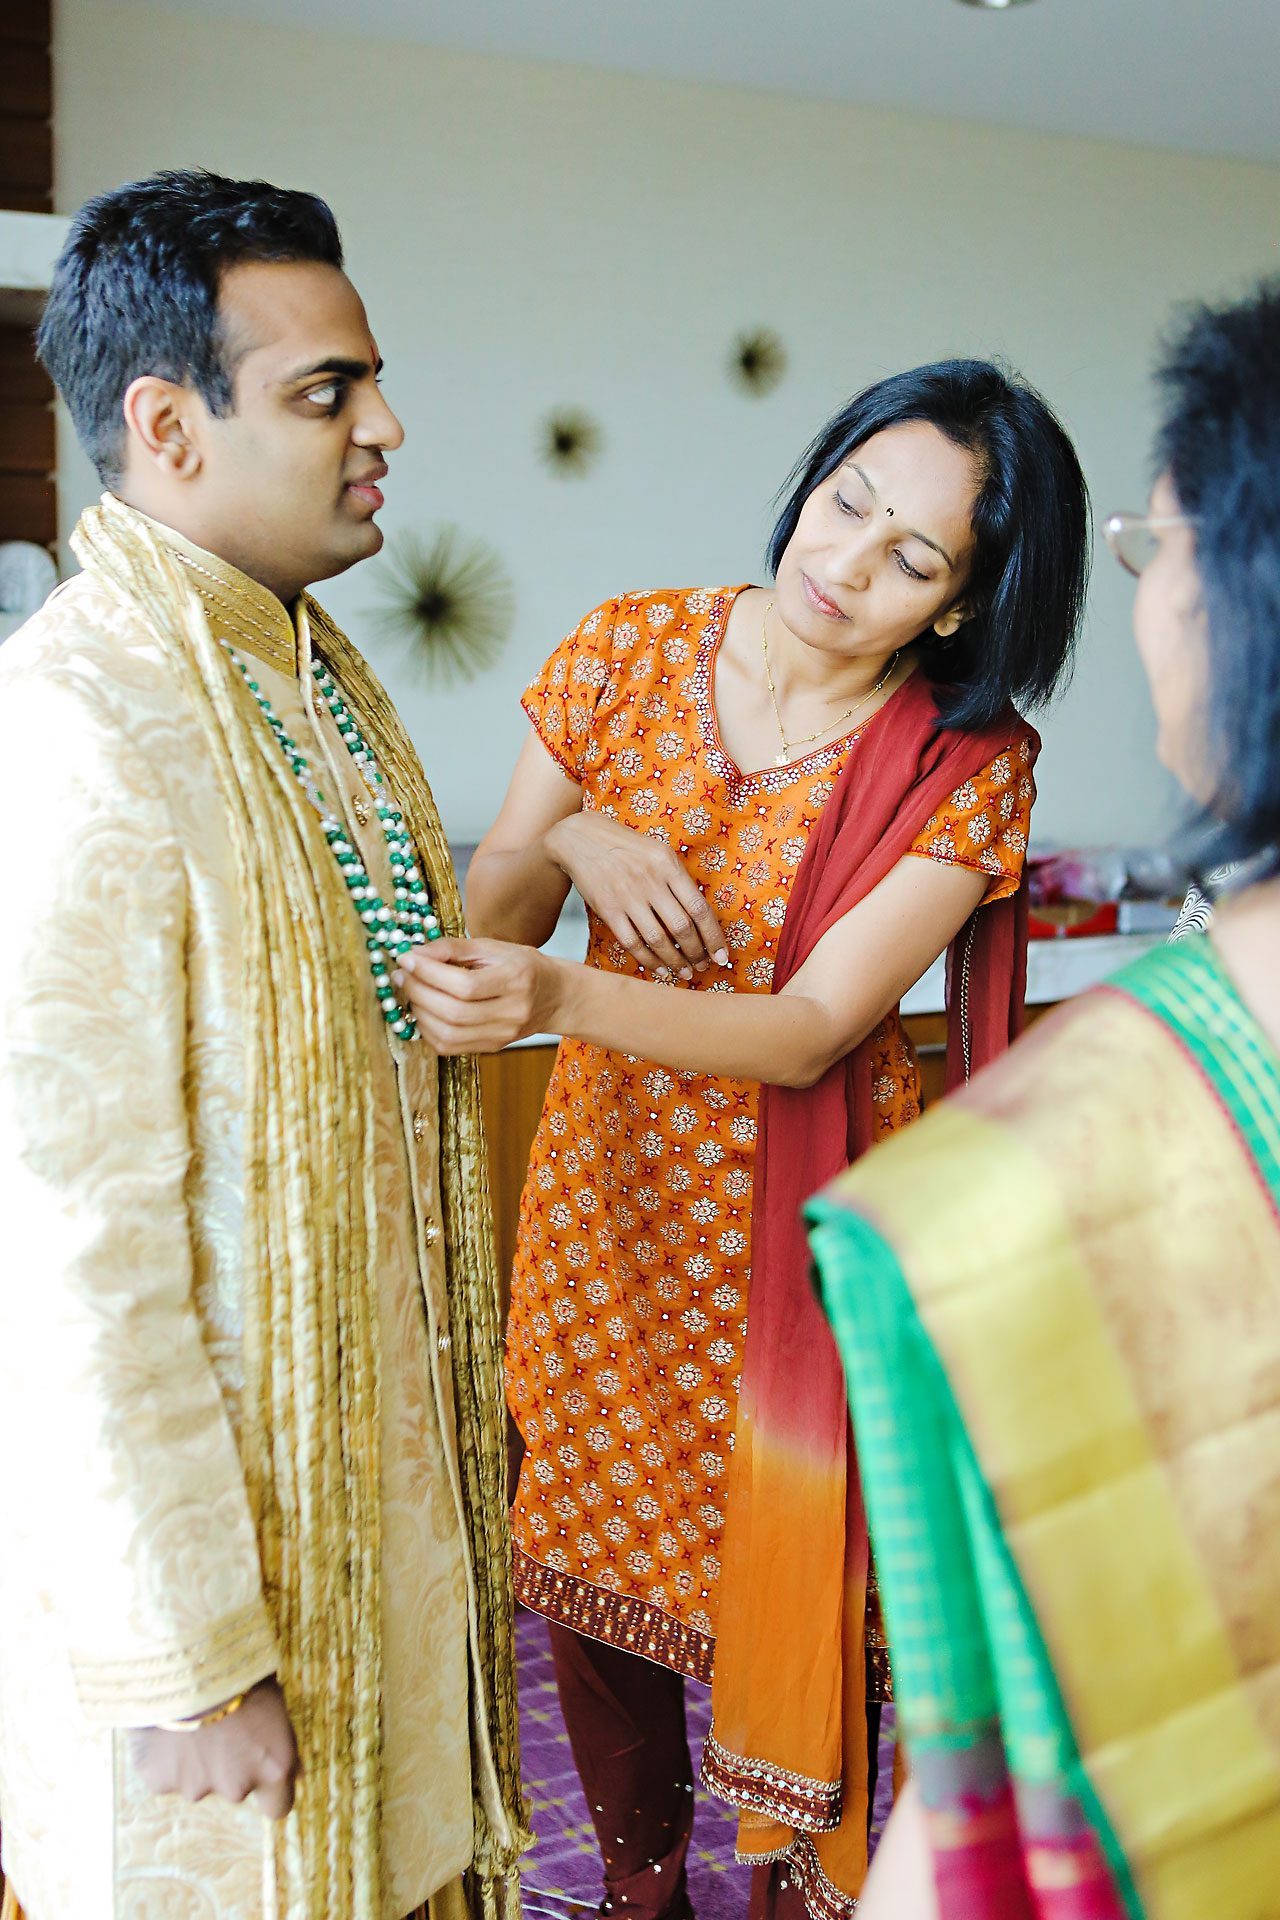 029 Vandana Anurag Indianapolis Indian Wedding